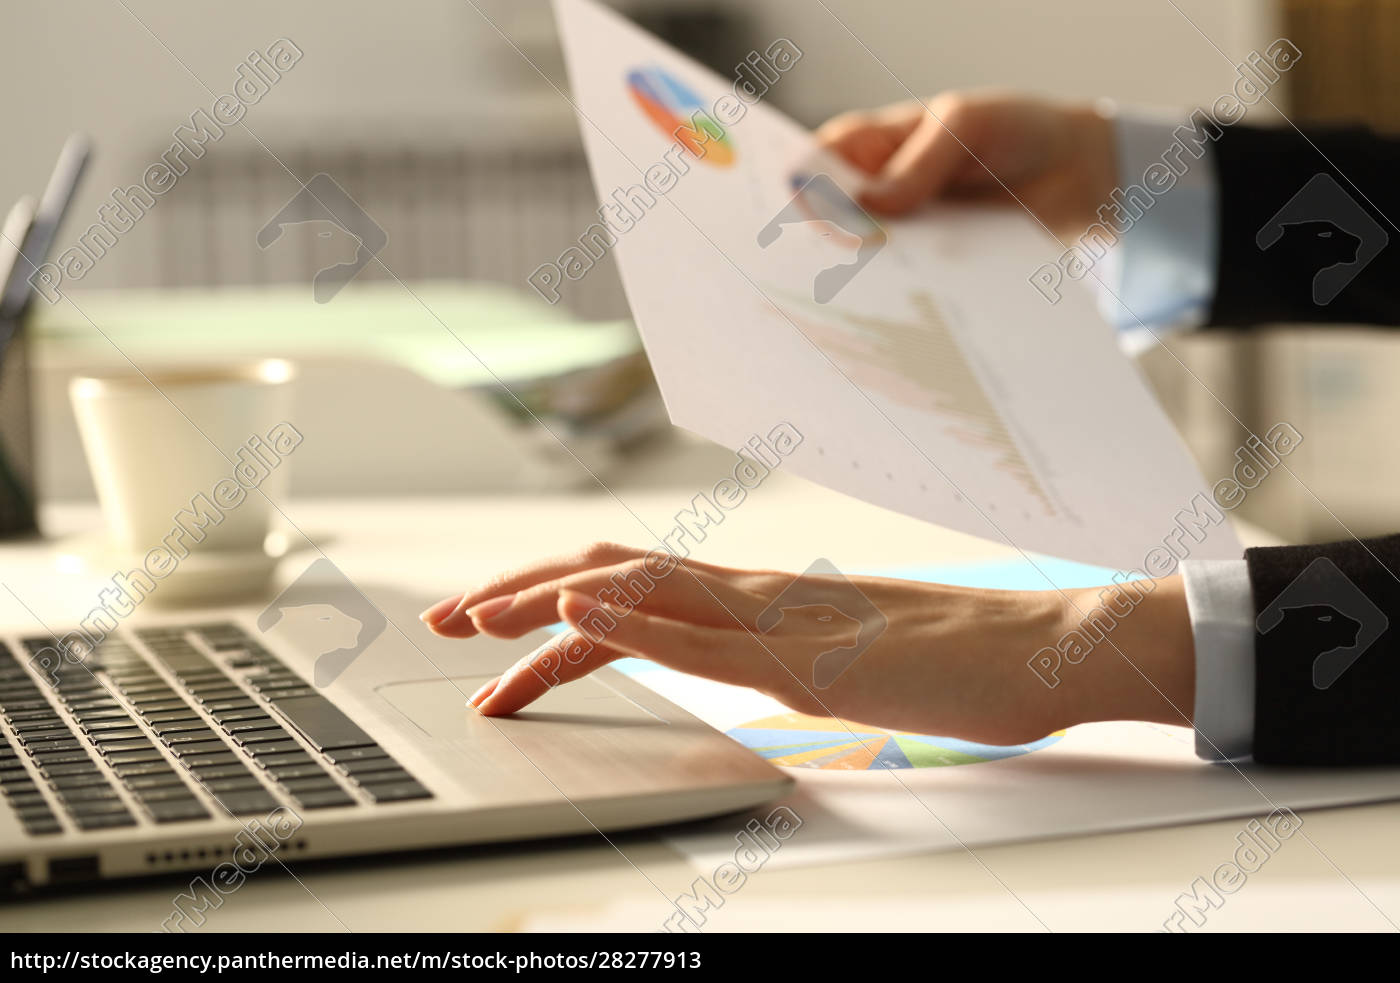 executive, hands, comparing, report, on, laptop - 28277913